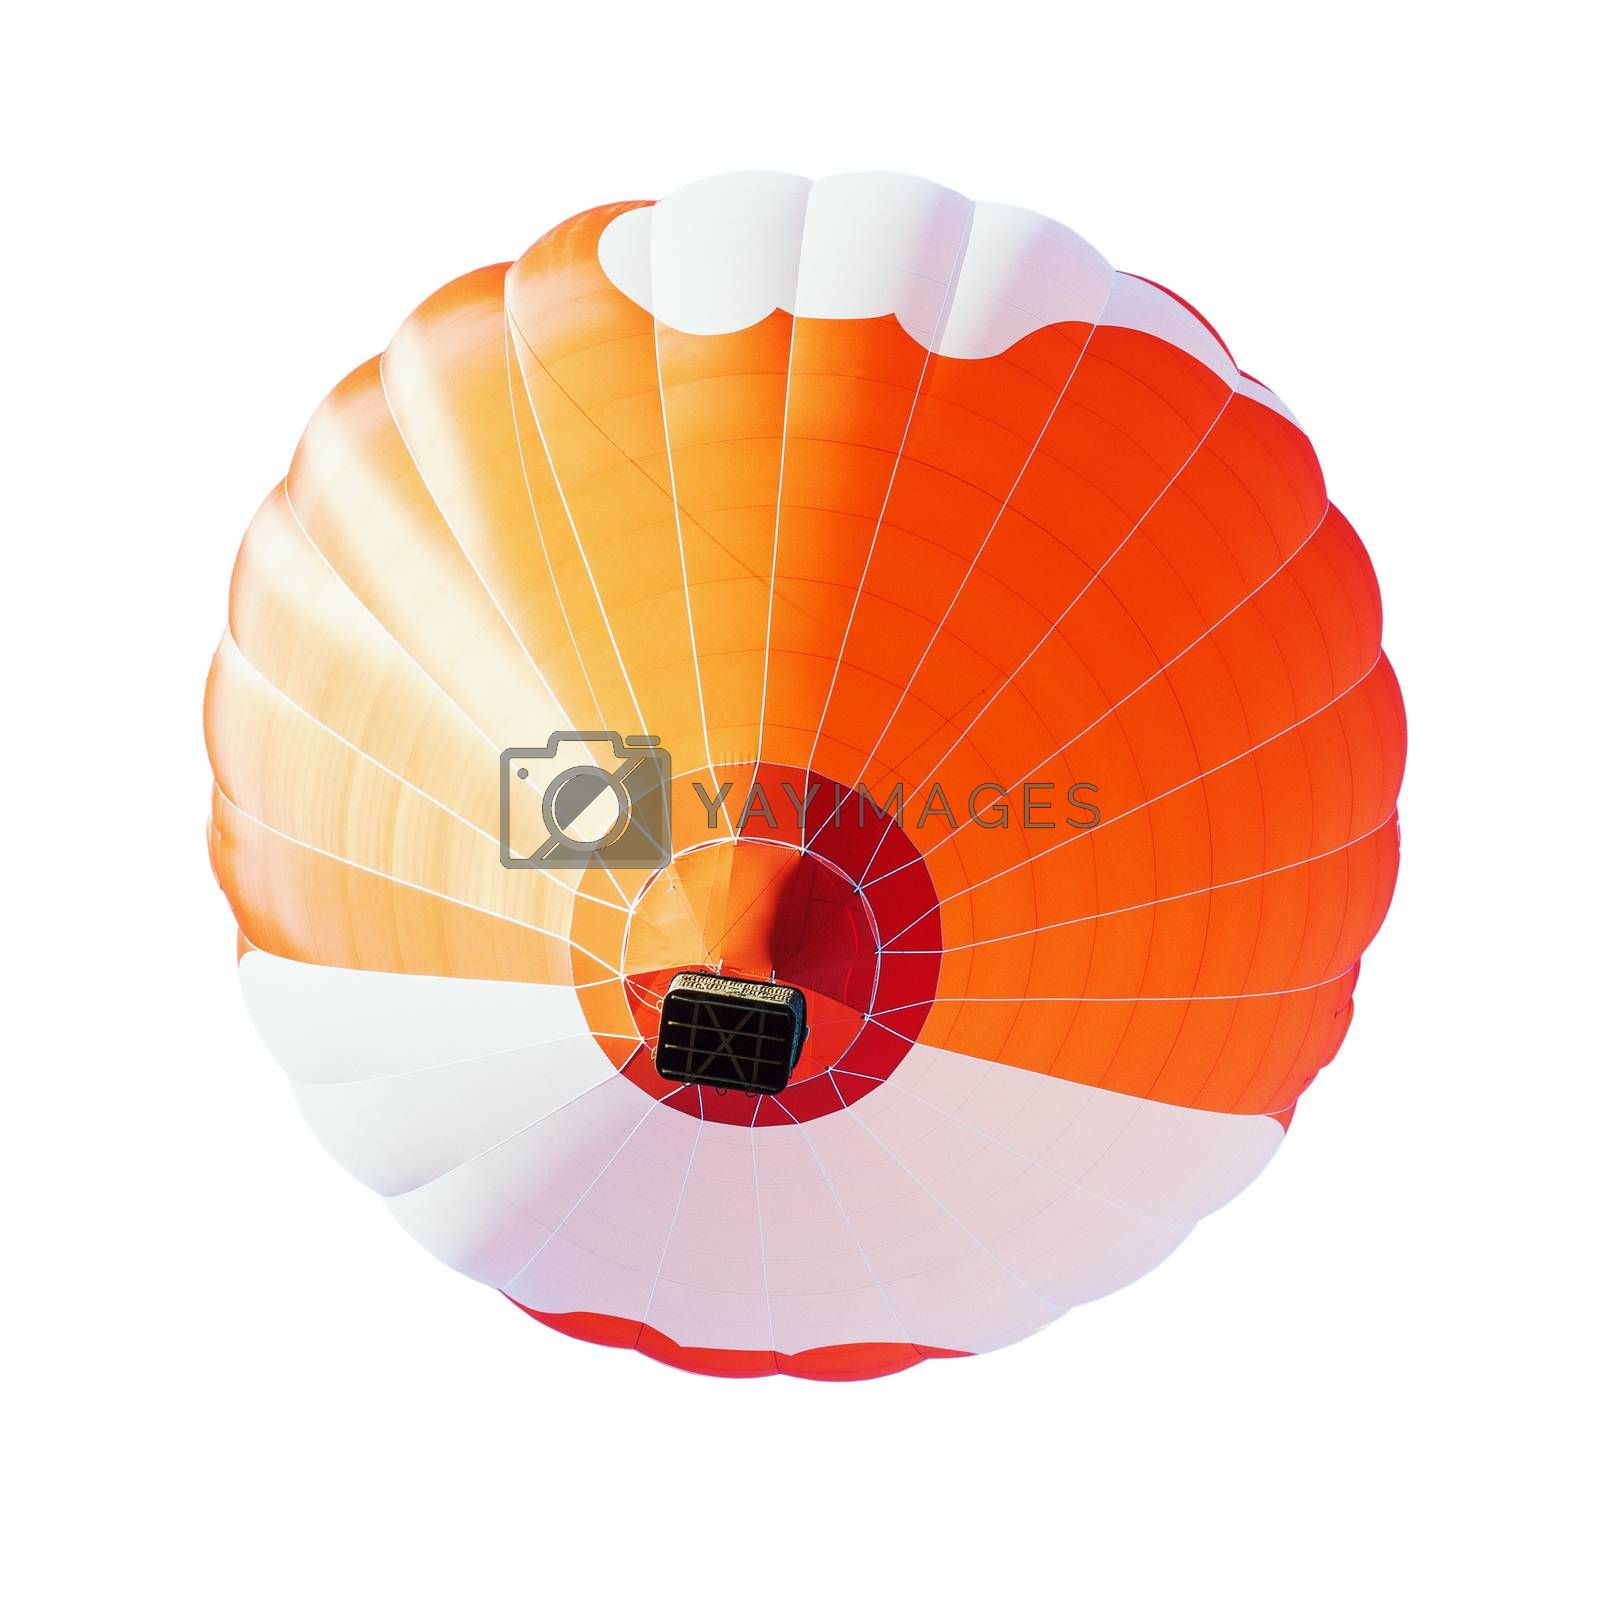 Colorful unbranded hot-air balloon flying, isolated on white background, low angle picture